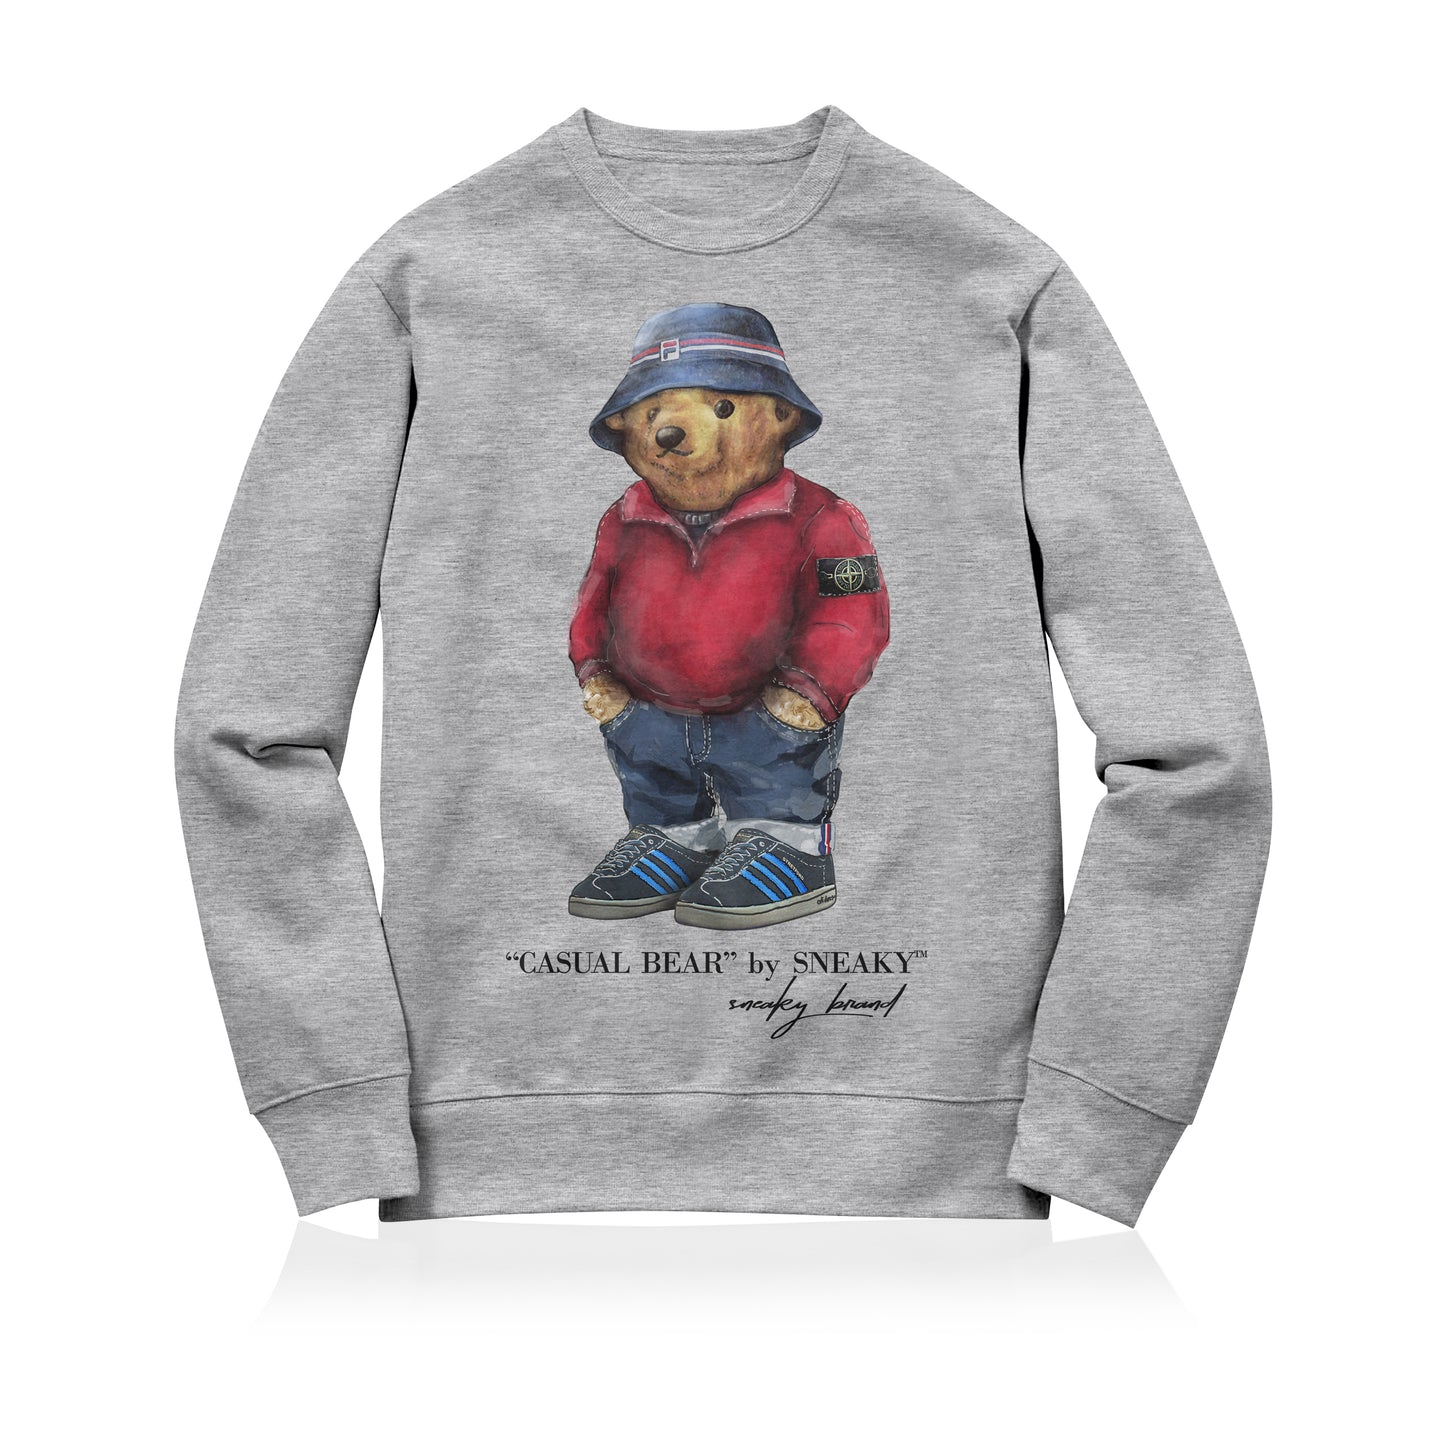 Sneaky Casual Bear Unisex Adult Sweatshirt Grey